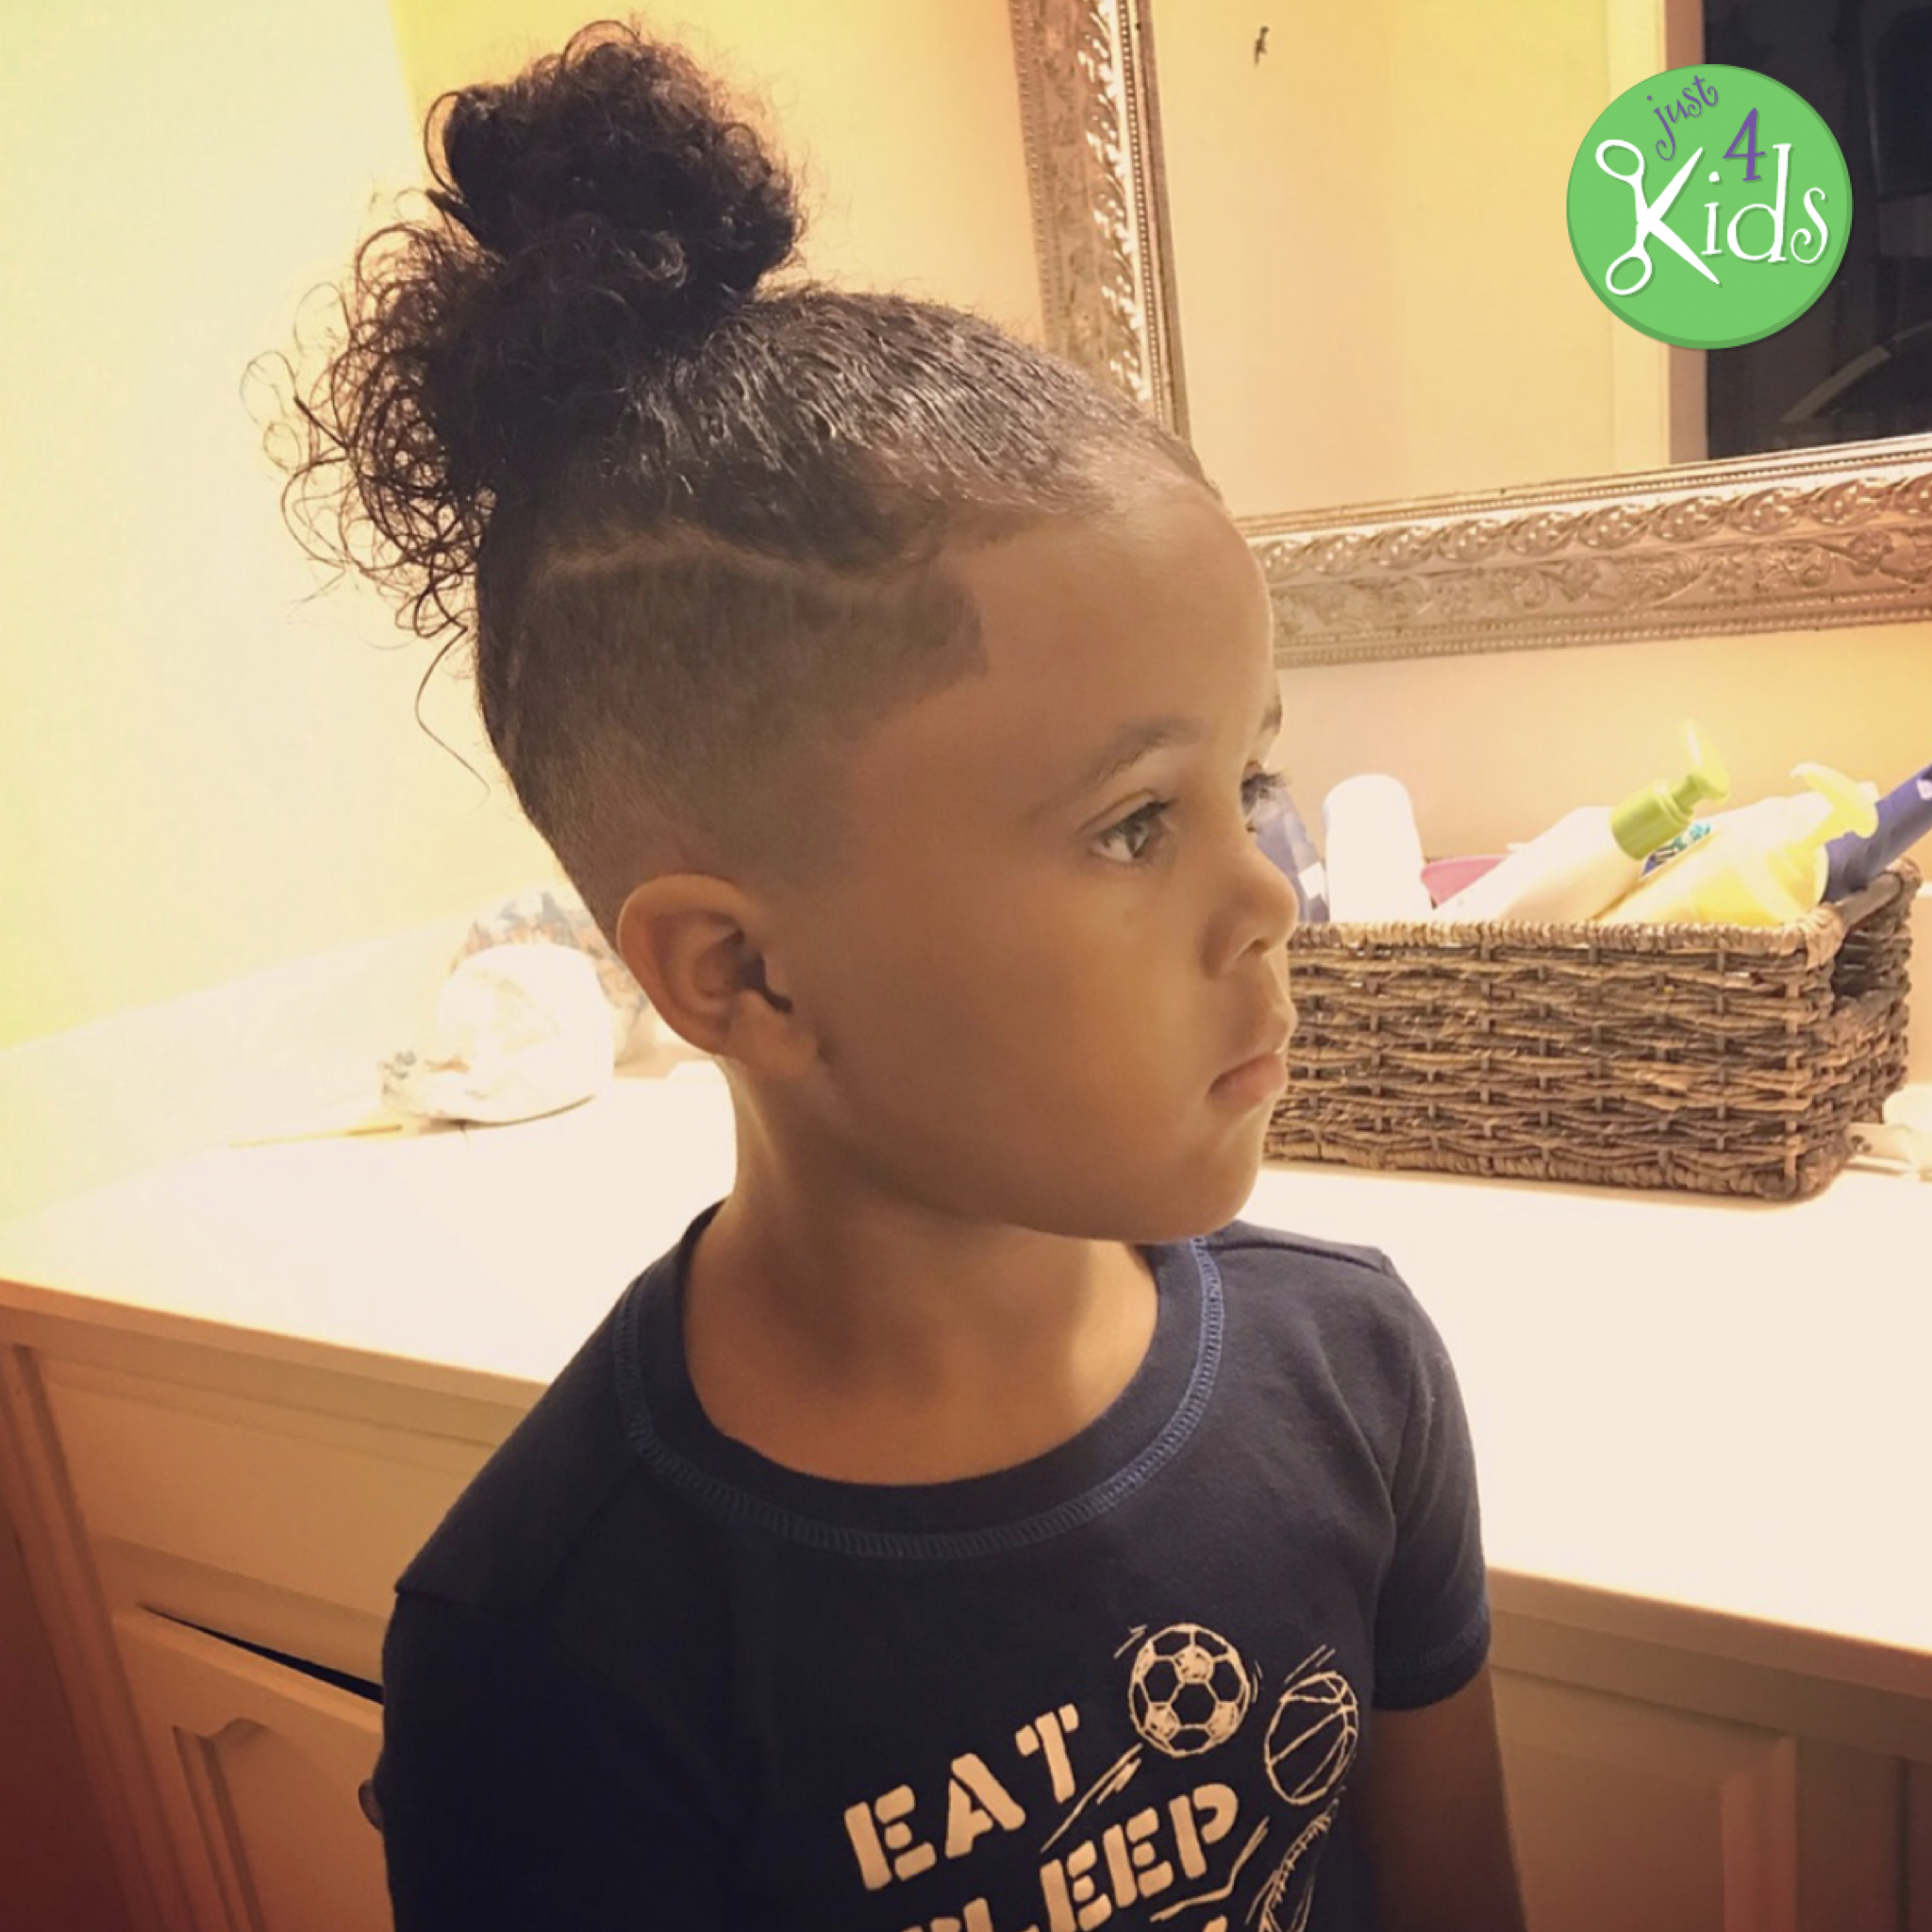 Top Kids Hairstyles 2018 - Long Hairstyles for Boys - Long Hair ...